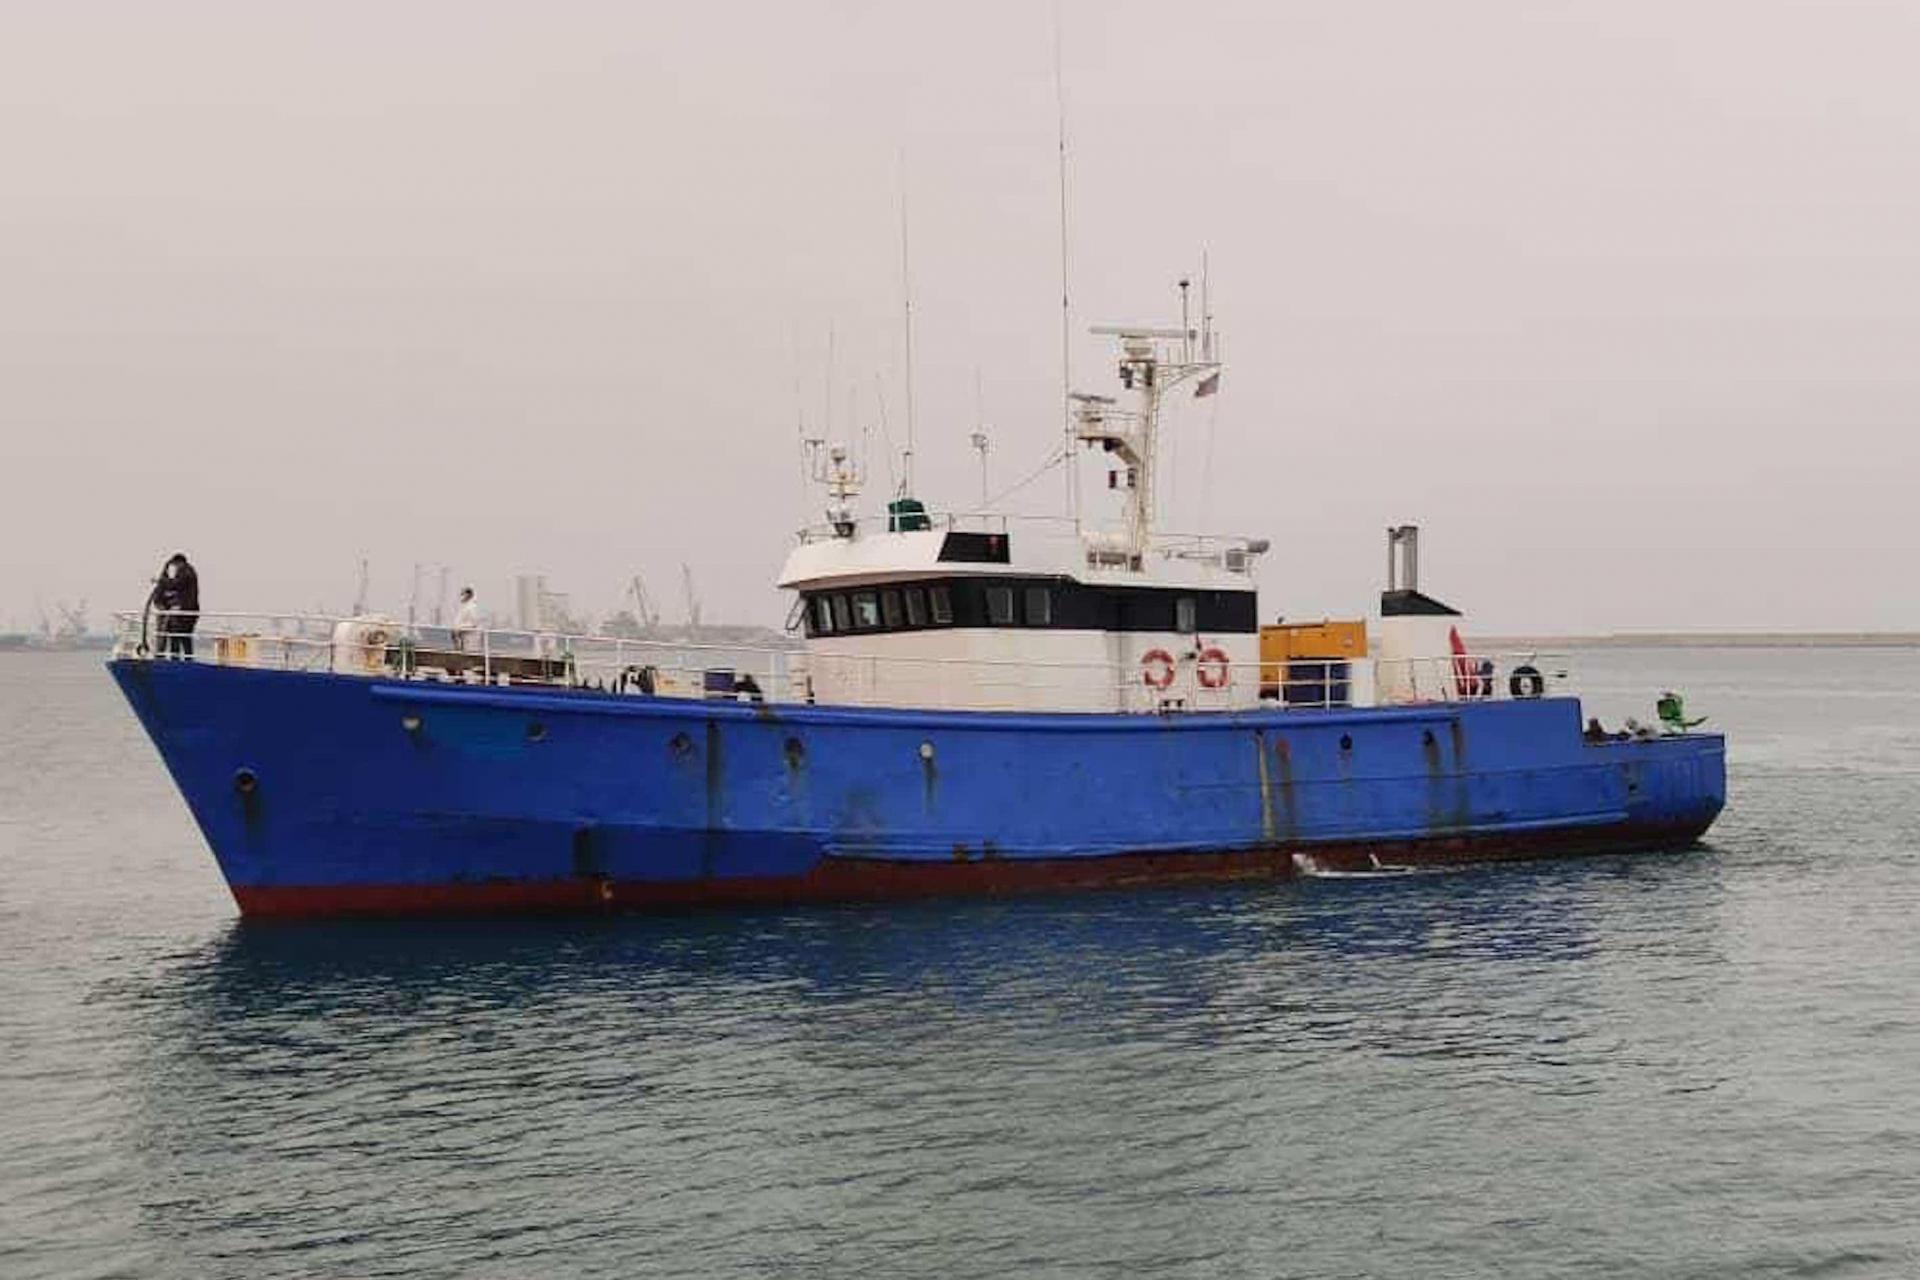 The Dar al Salam, formerly called the Mae Yemenja, and owned by Maltese sea captain Carmelo Grech, brought the migrants to Libya. Photo: Manuel Delia